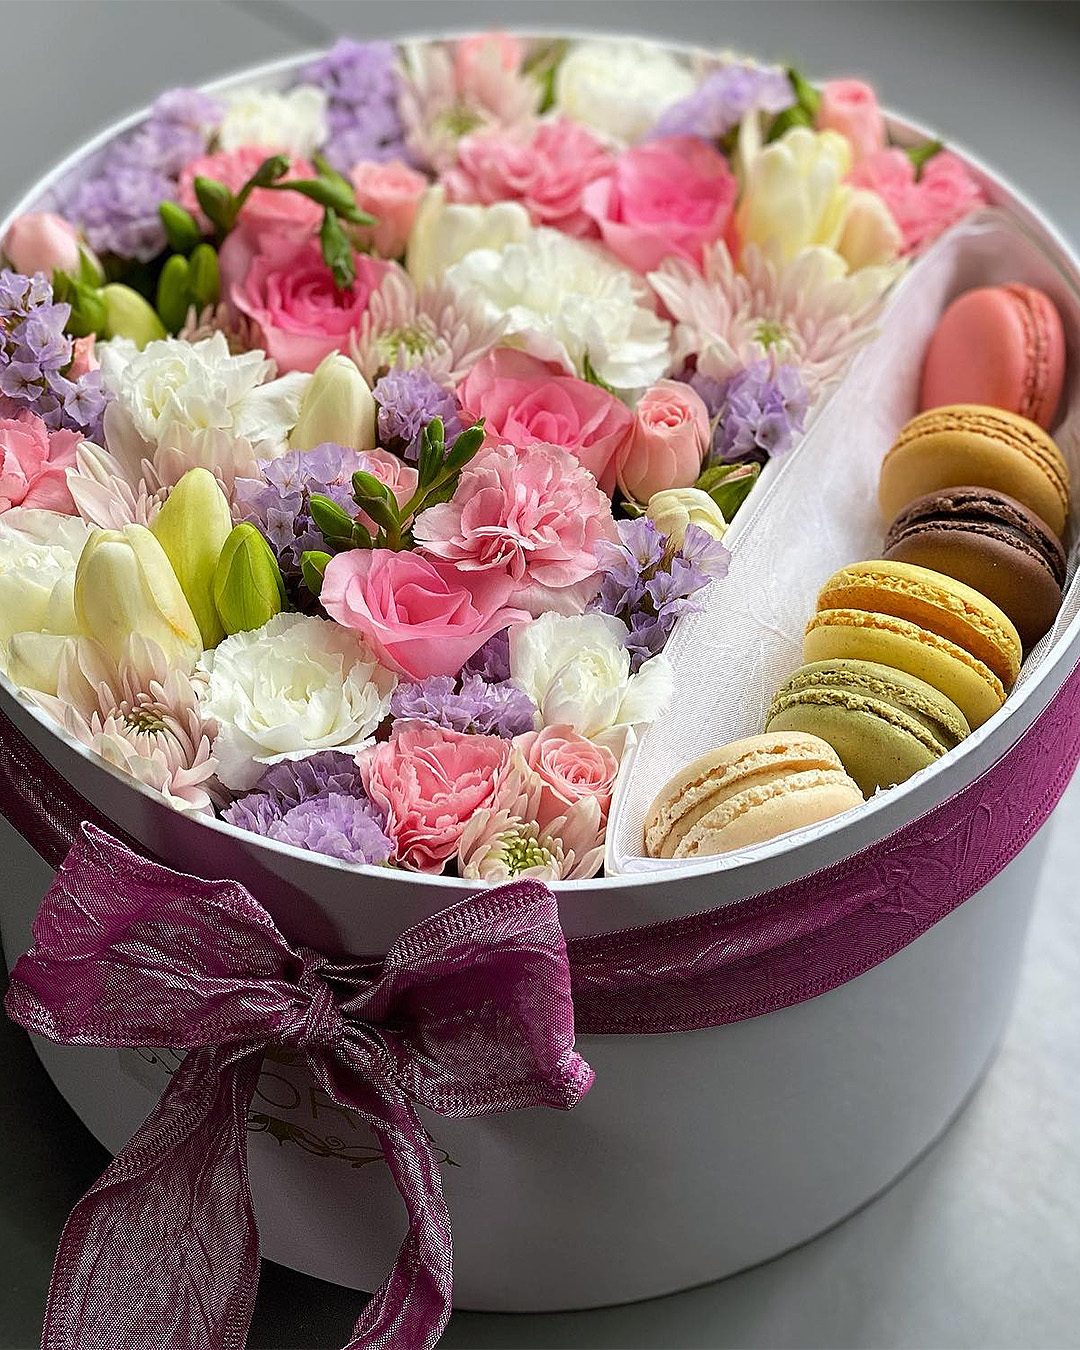 Flowers with a little side of macarons from Istoria.